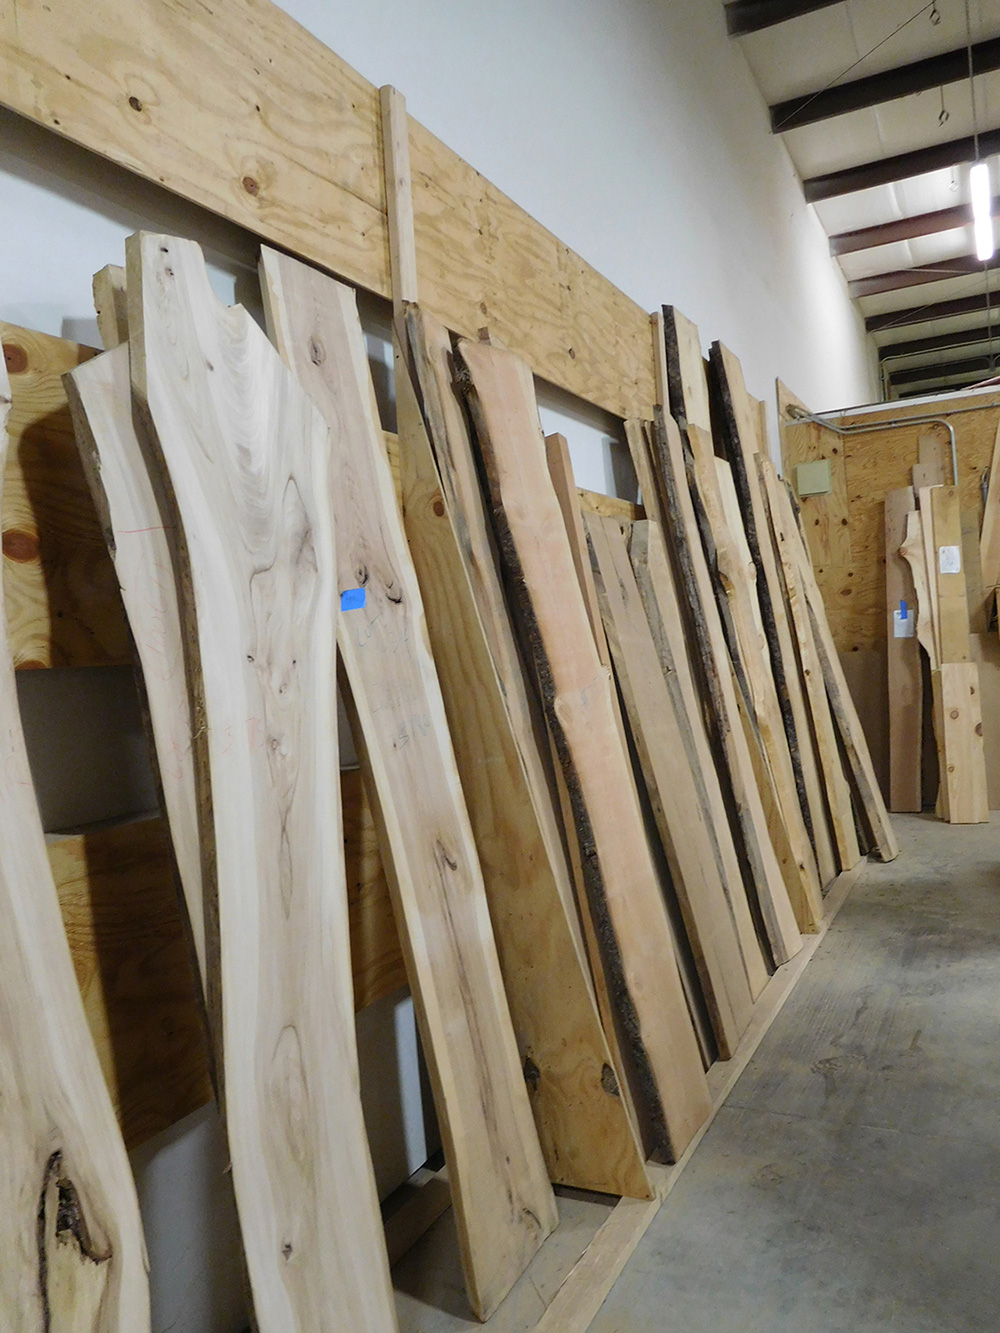 Figure 2. Slabs of urban wood displayed at a small mill and furniture manufacturer in Madison, Wisconsin. Species include honey locust, Siberian elm, white oak, red mulberry, and Northern catalpa, among others.